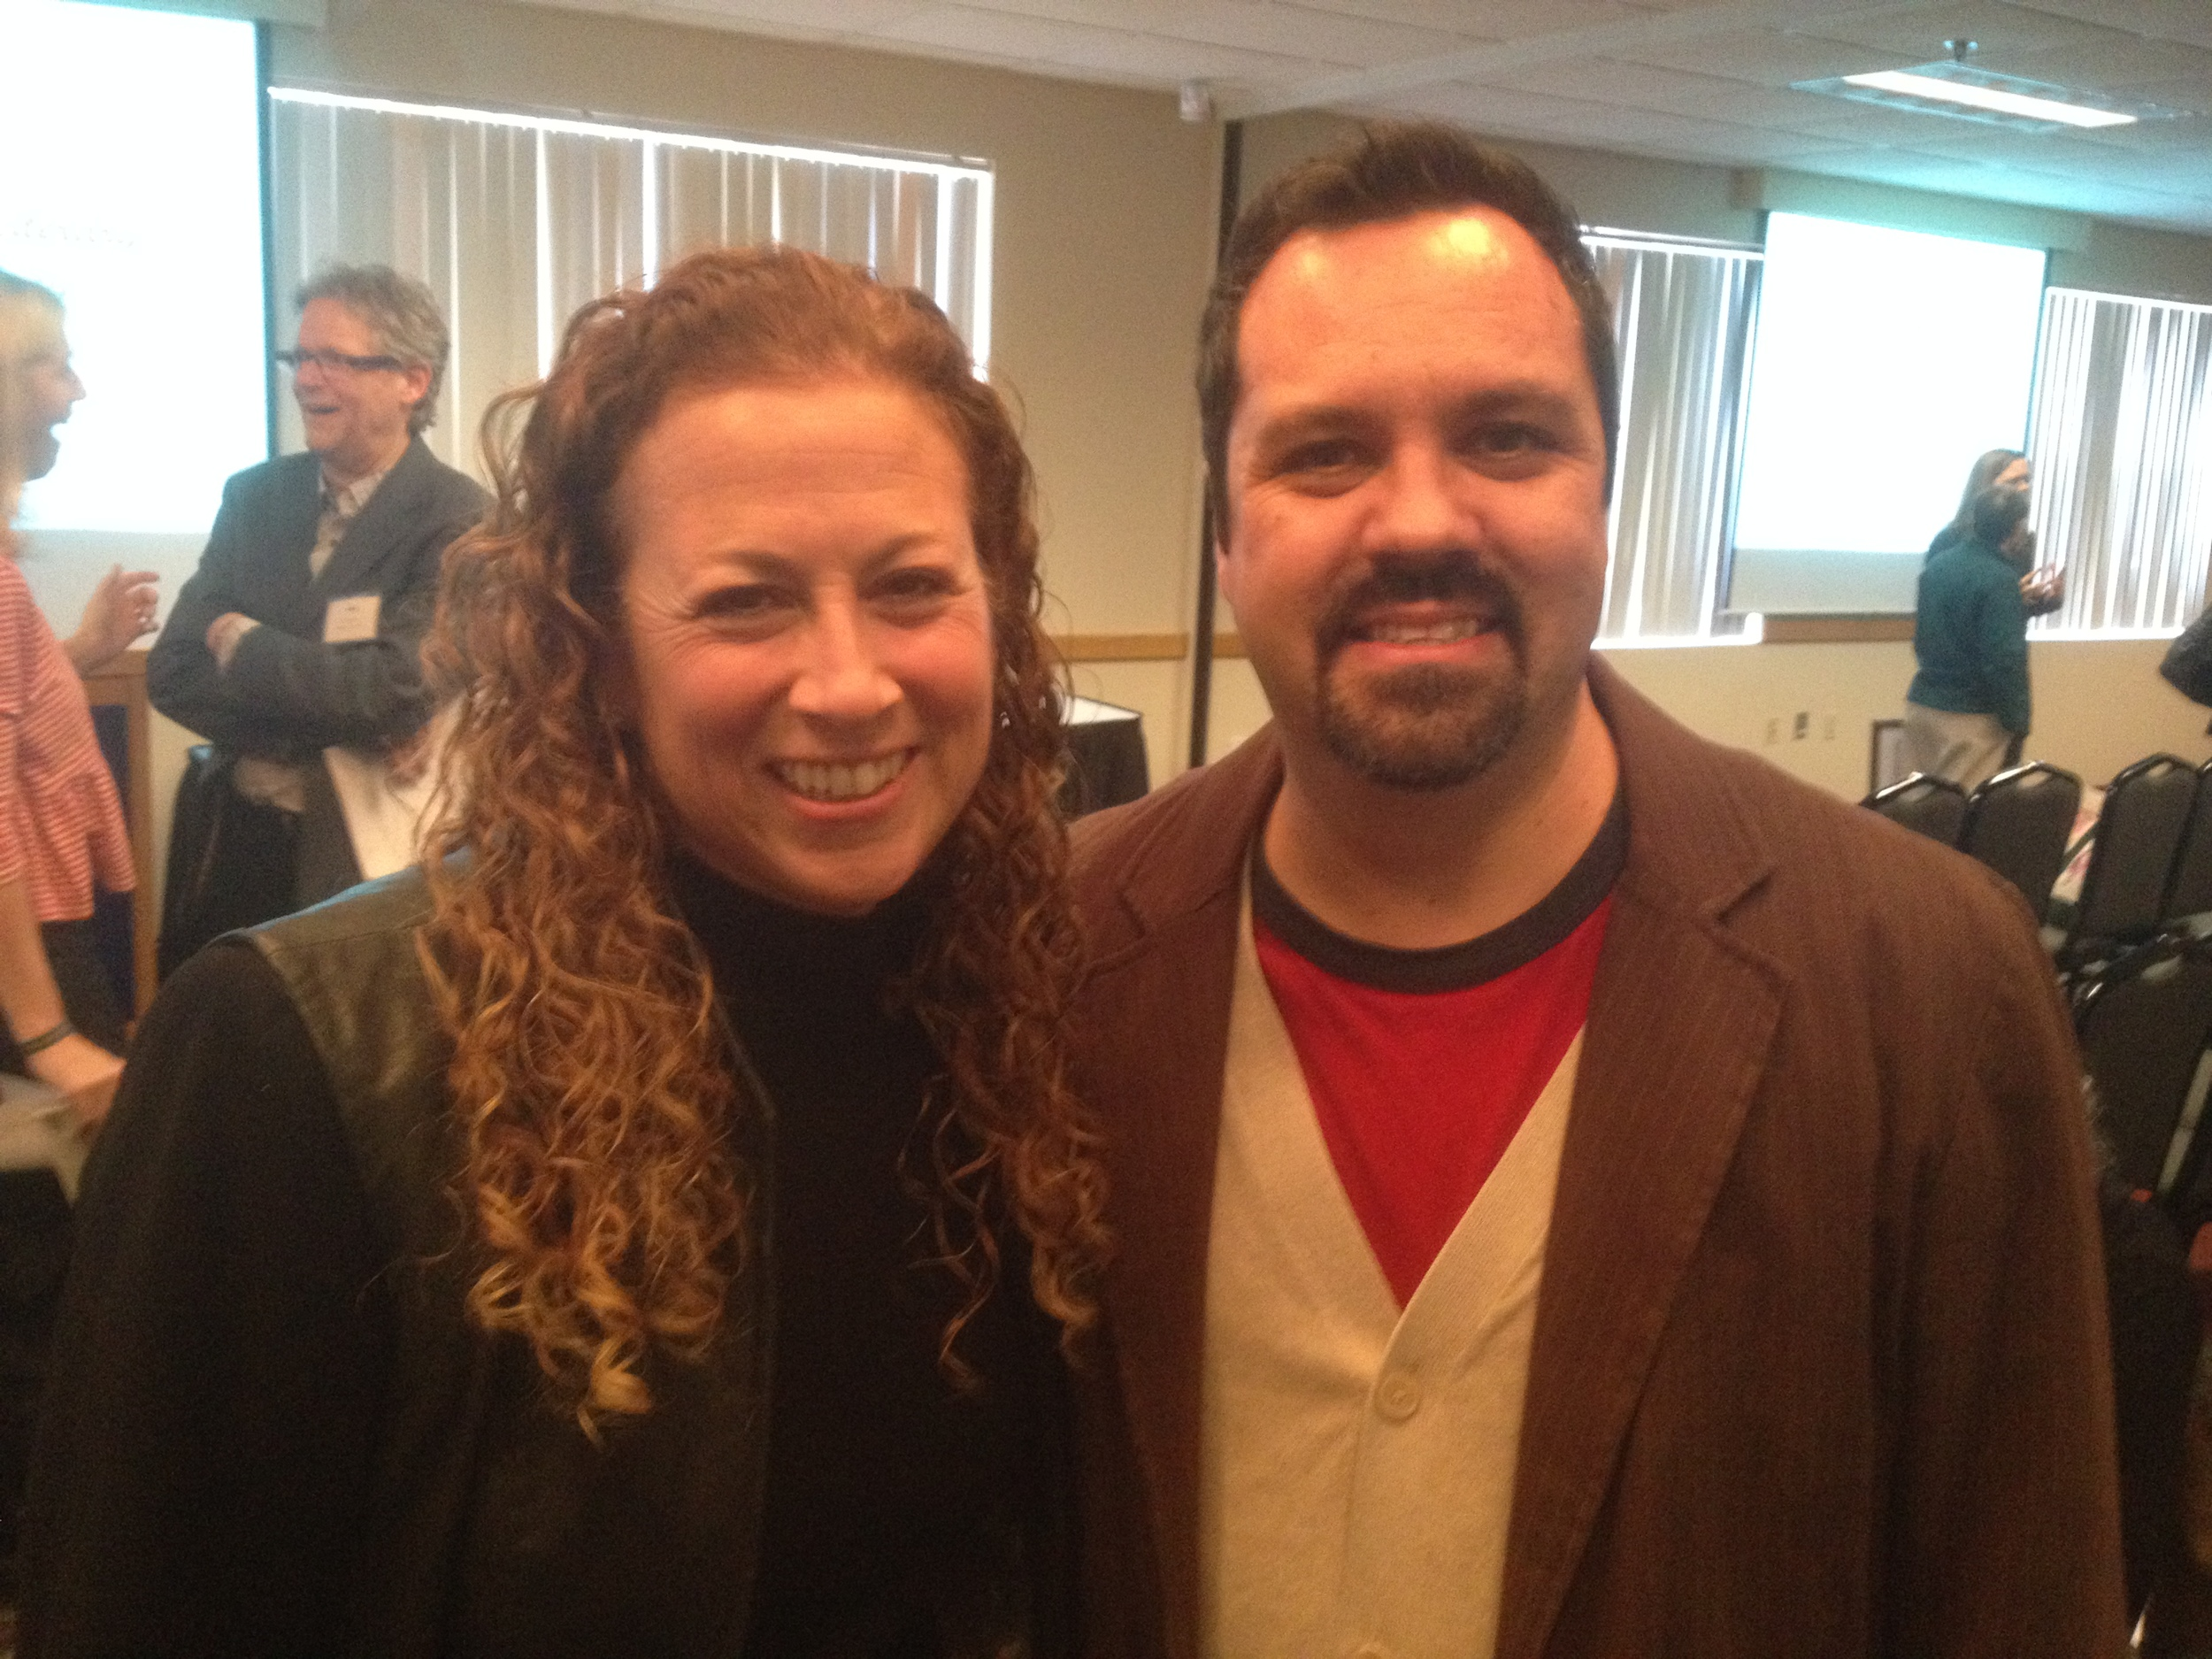 Kevin greeting NYT best-selling author Jodi Picoult, another New Hampshire writer with a slighter larger following.